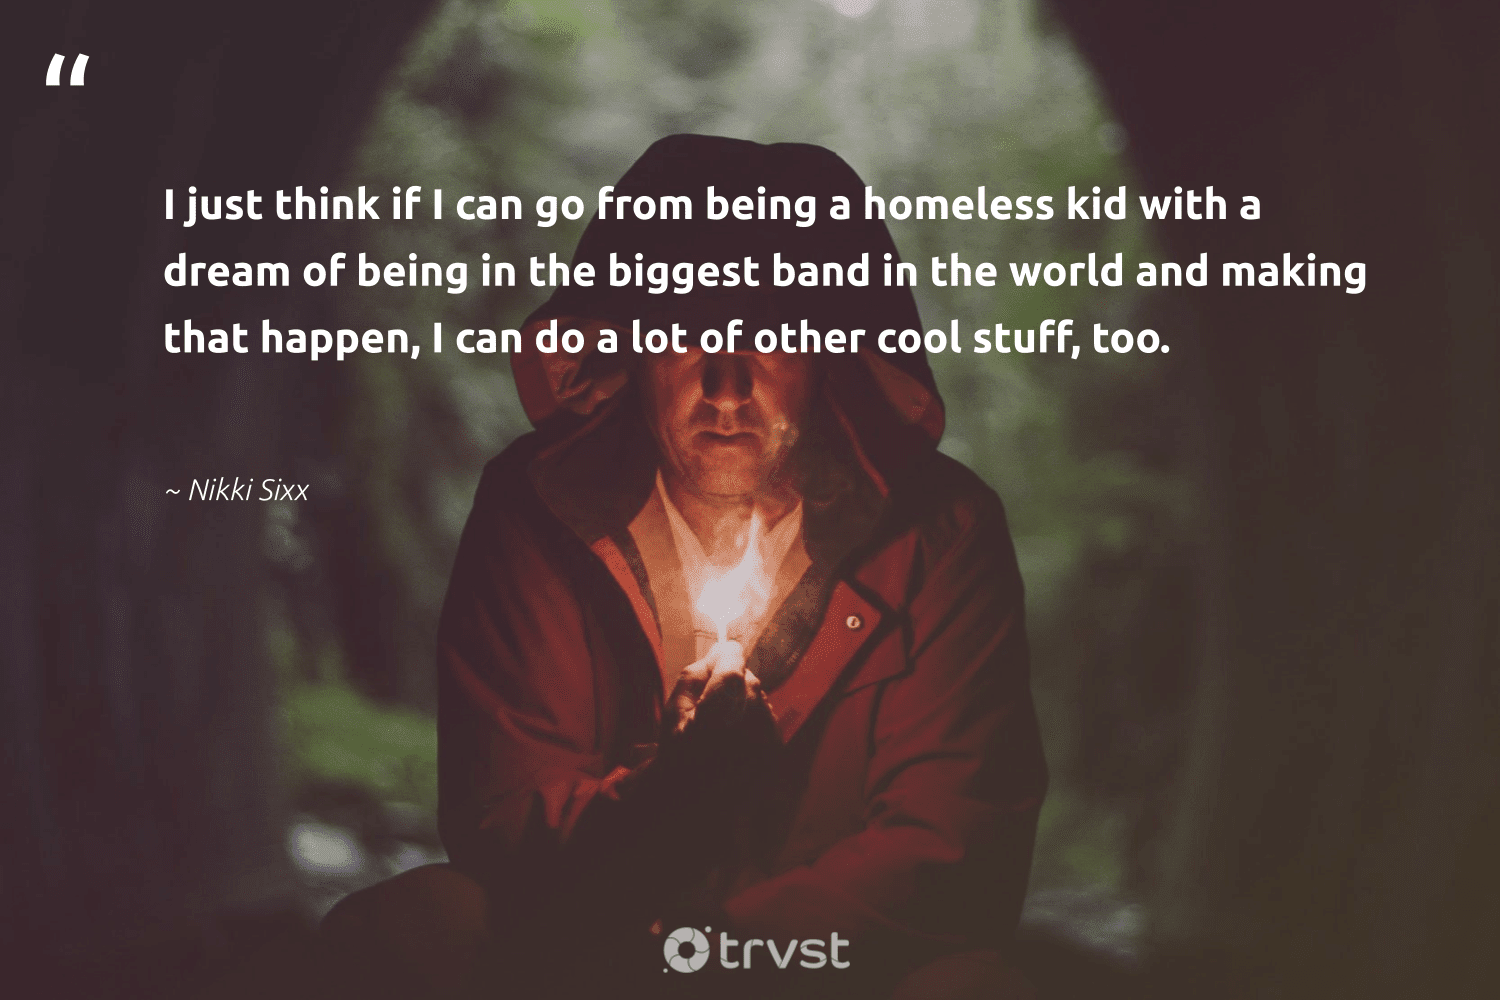 """""""I just think if I can go from being a homeless kid with a dream of being in the biggest band in the world and making that happen, I can do a lot of other cool stuff, too.""""  - Nikki Sixx #trvst #quotes #homelessness #homeless #makeadifference #sustainablefutures #thinkgreen #weareallone #equalopportunity #collectiveaction #equalrights #inclusion"""